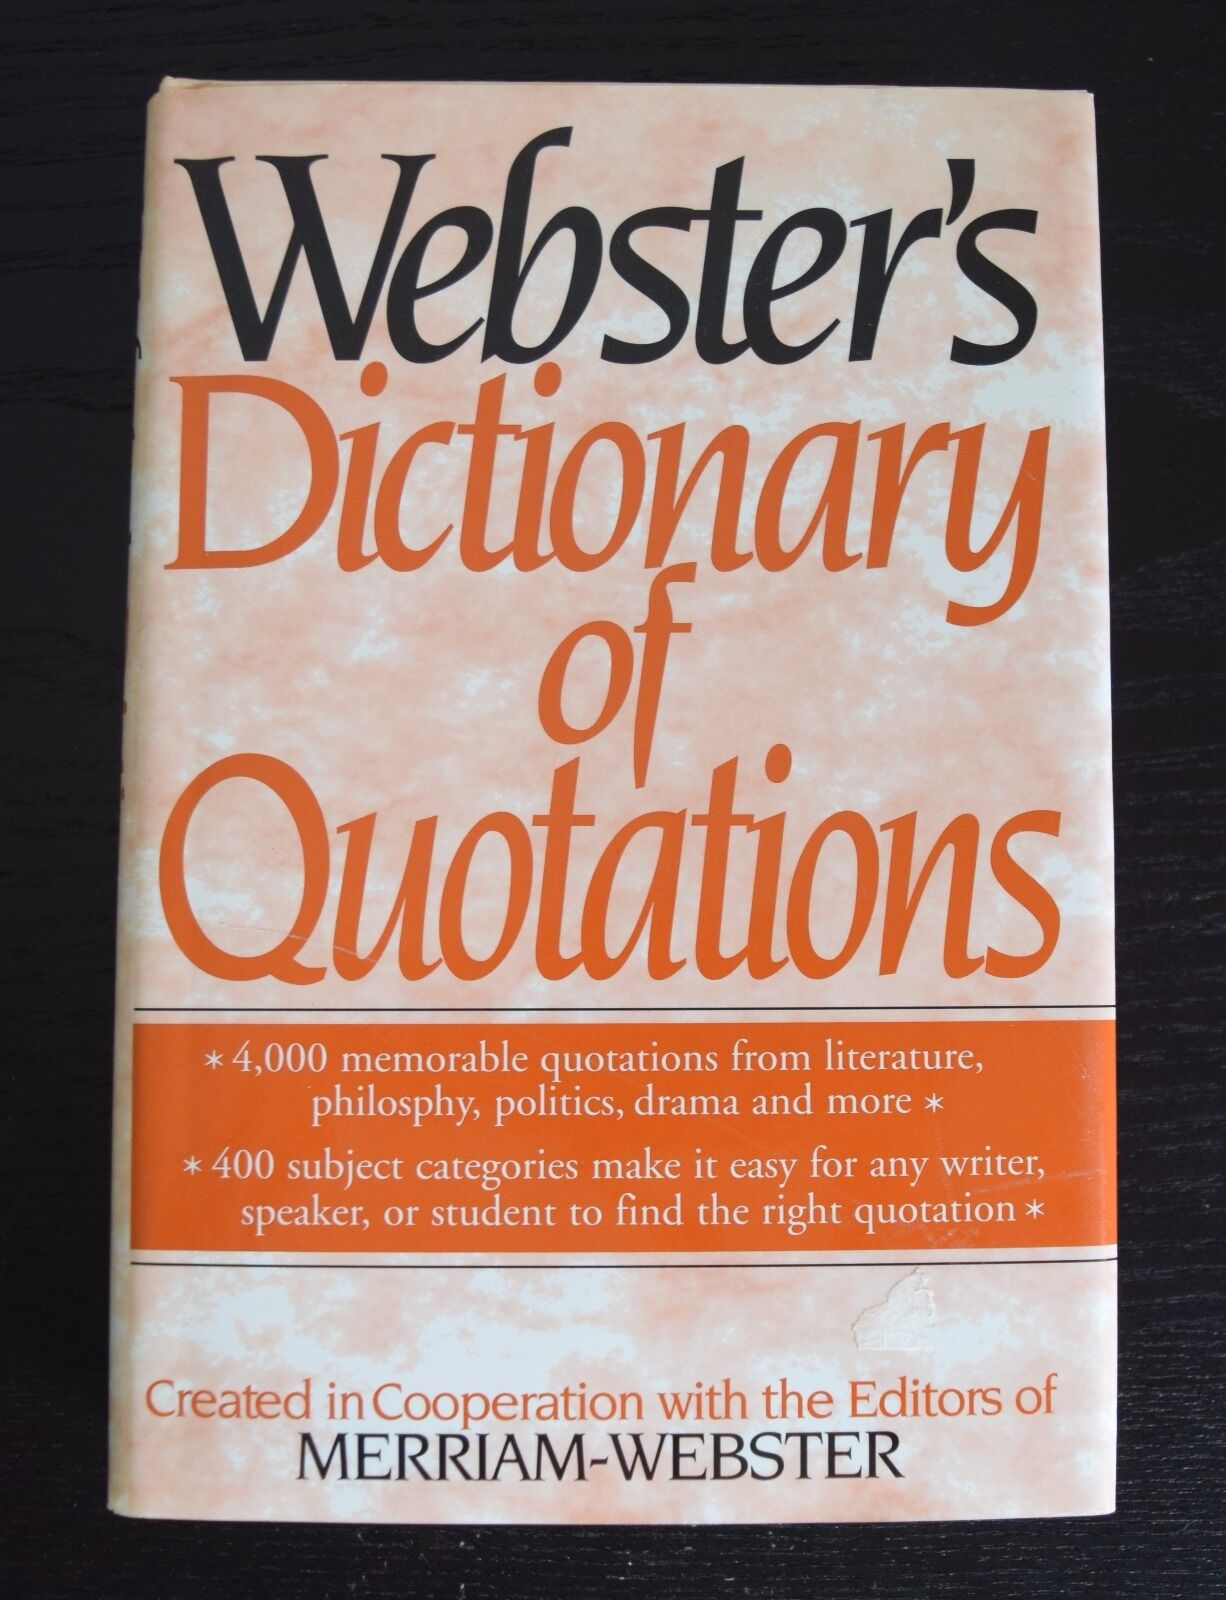 Merriam-Websters Dictionary of Quotations